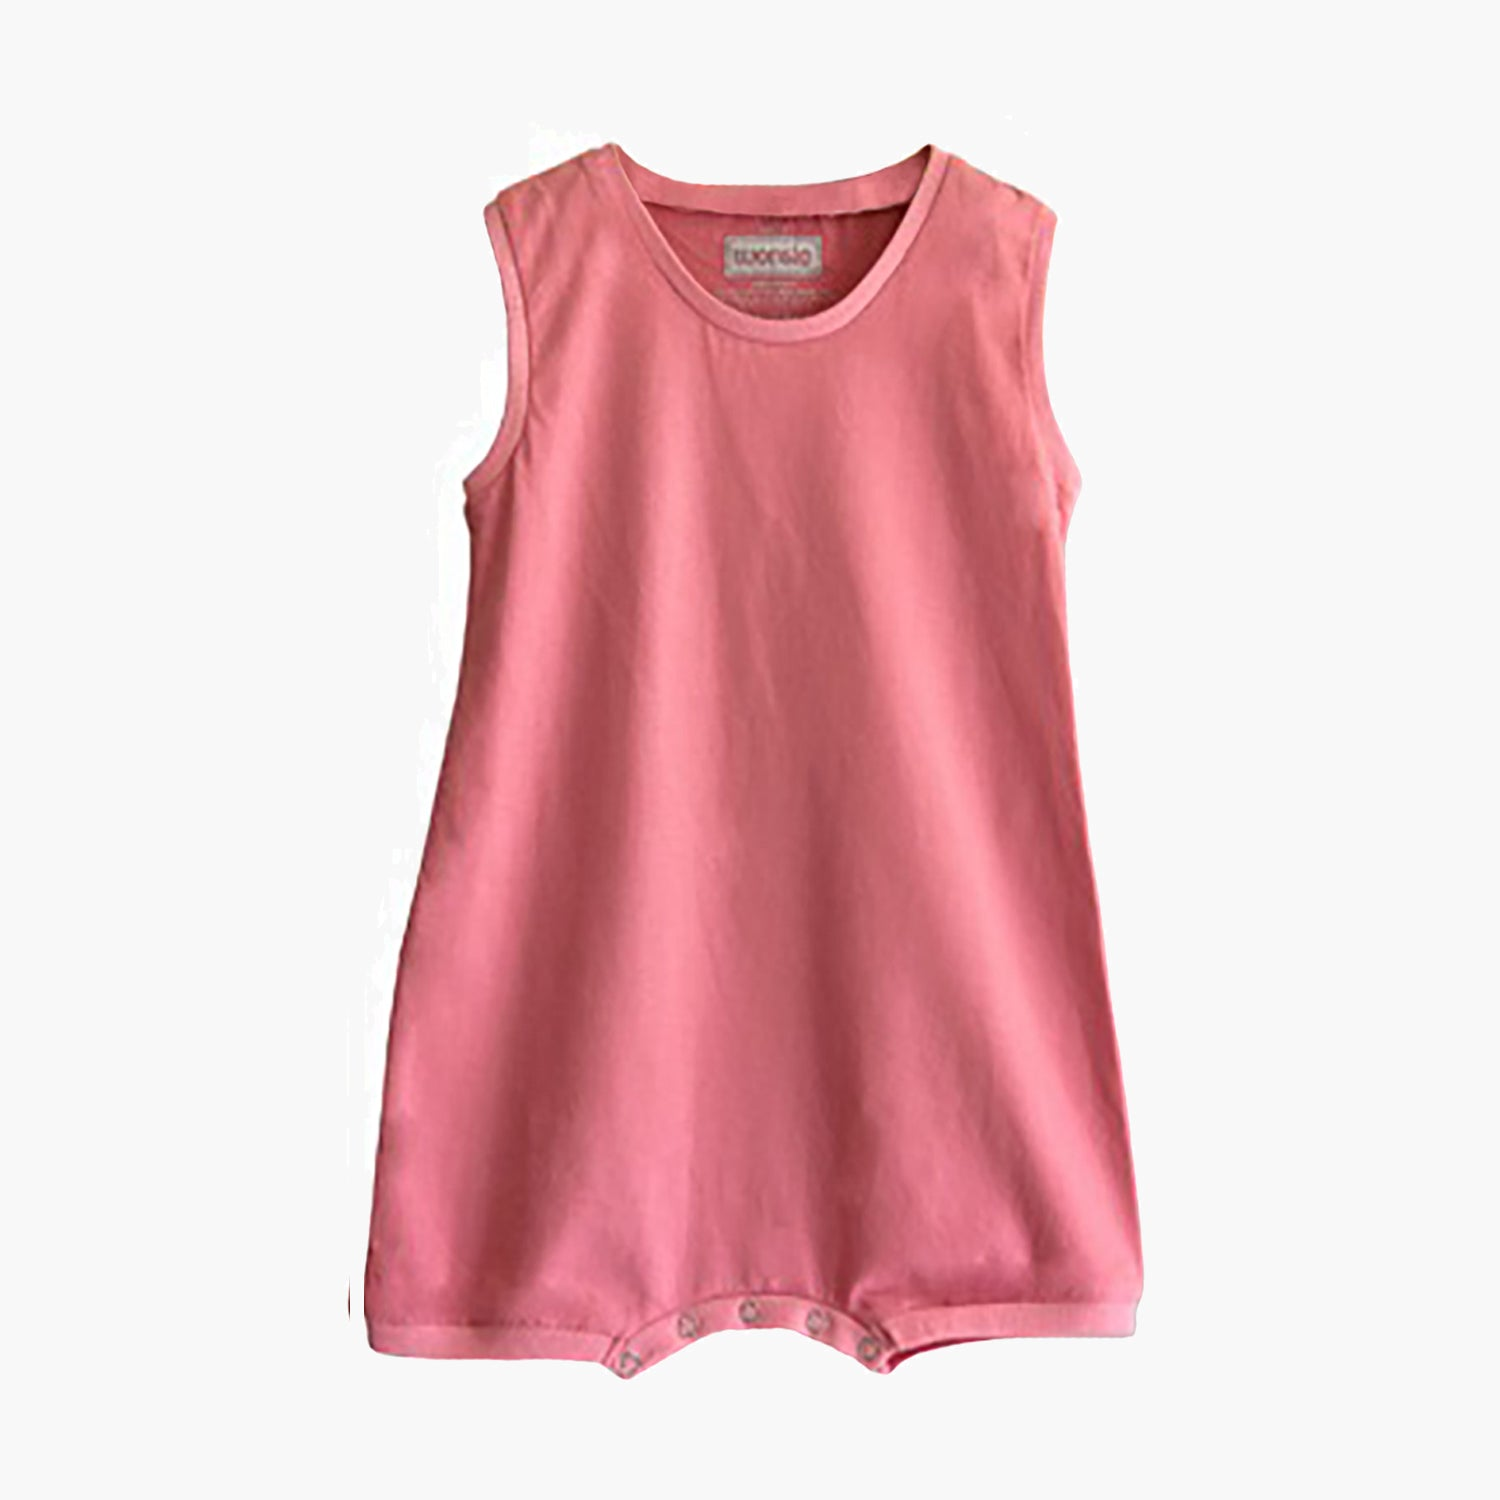 special needs, bodysuit, onesie, wonsie, big kid, adaptive, cotton, disability, tagless, sleeveless, teen, adult Clothing Adaptive Cotton Medical Fair Trade Organic